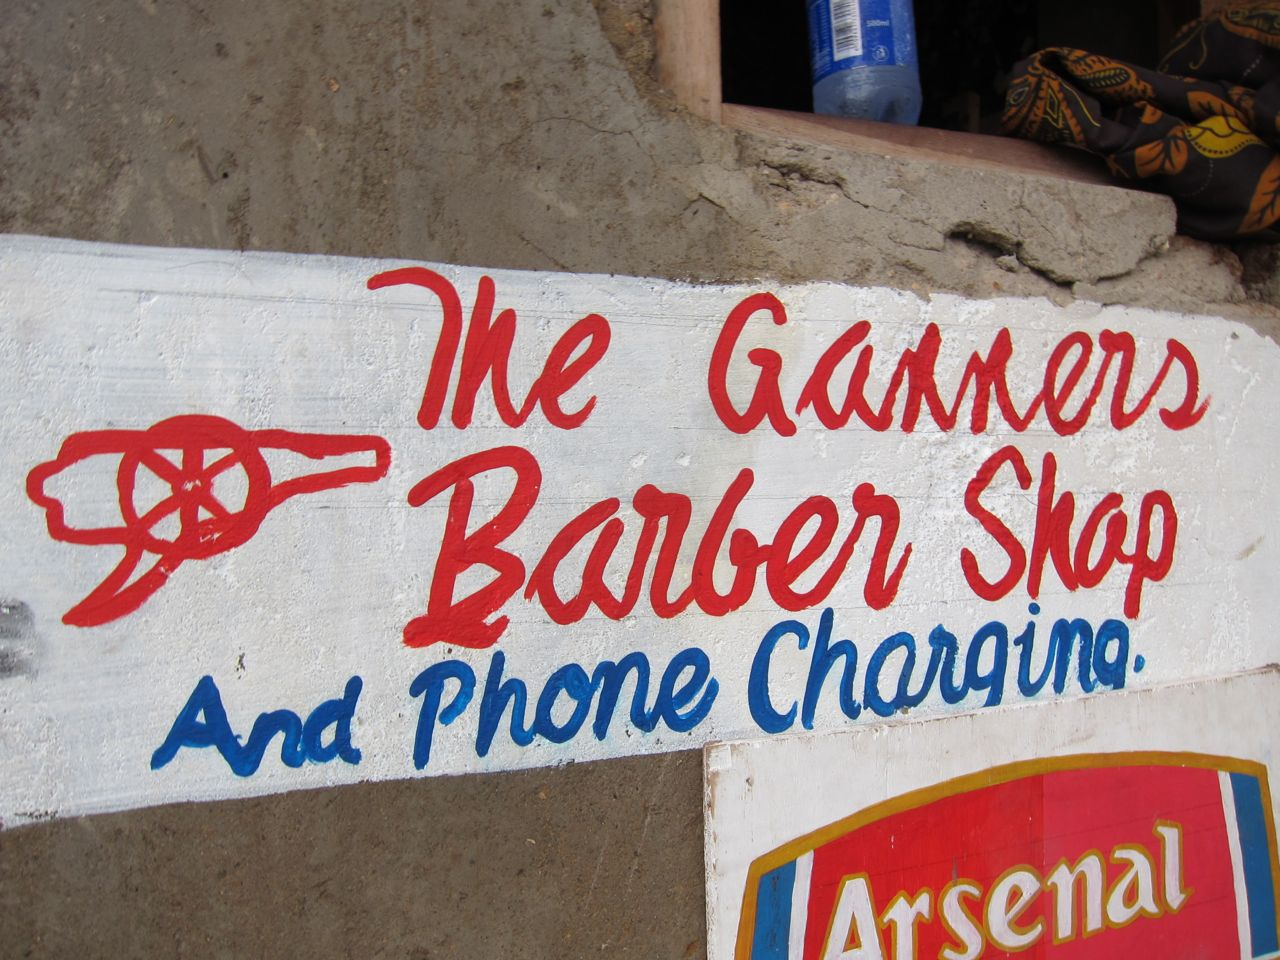 The gunners, barber shop and phone charging